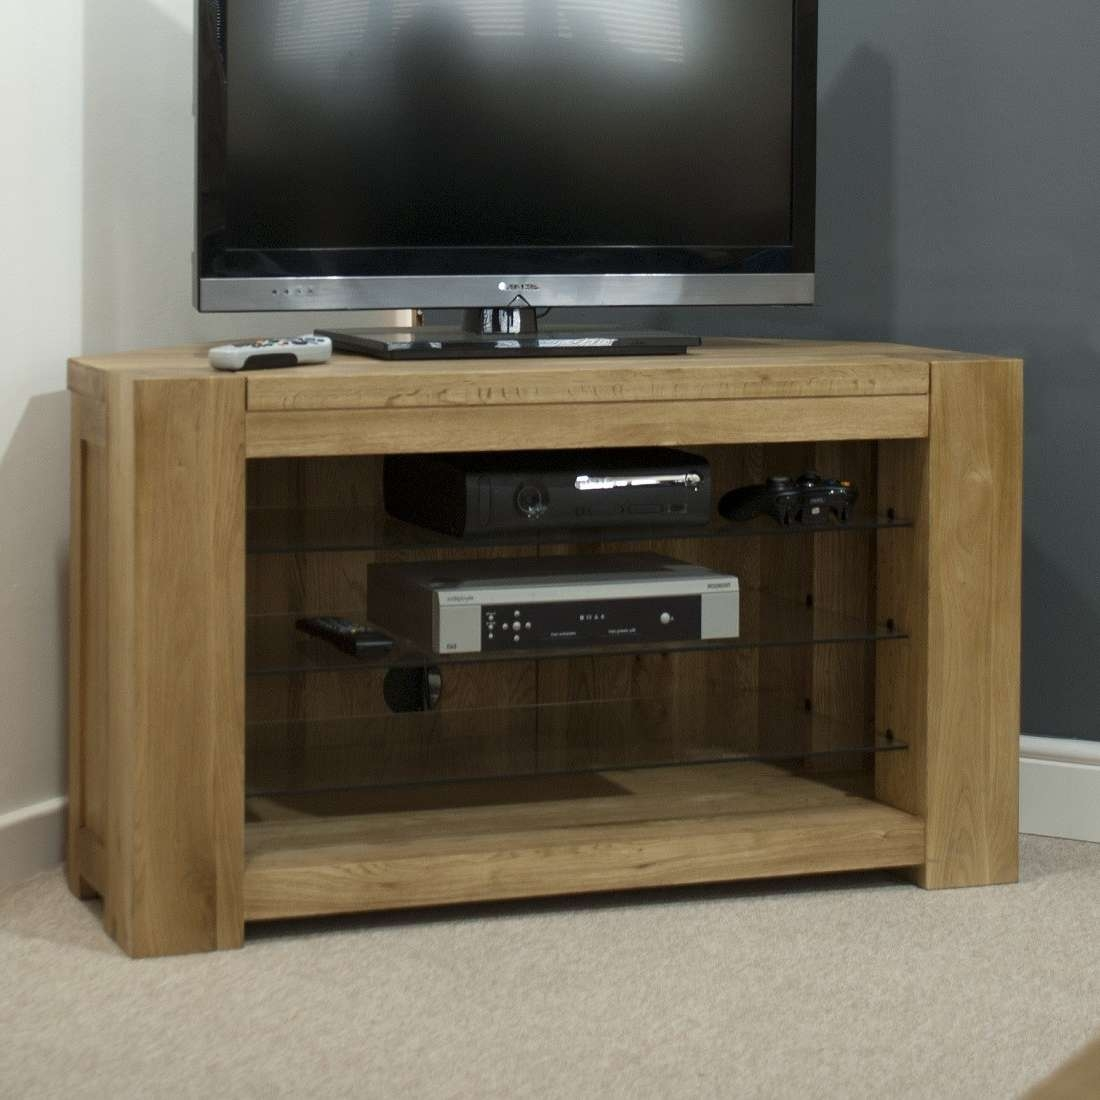 Trend Solid Oak Corner Tv Unit | Oak Furniture Uk Within Solid Oak Tv Cabinets (View 6 of 20)